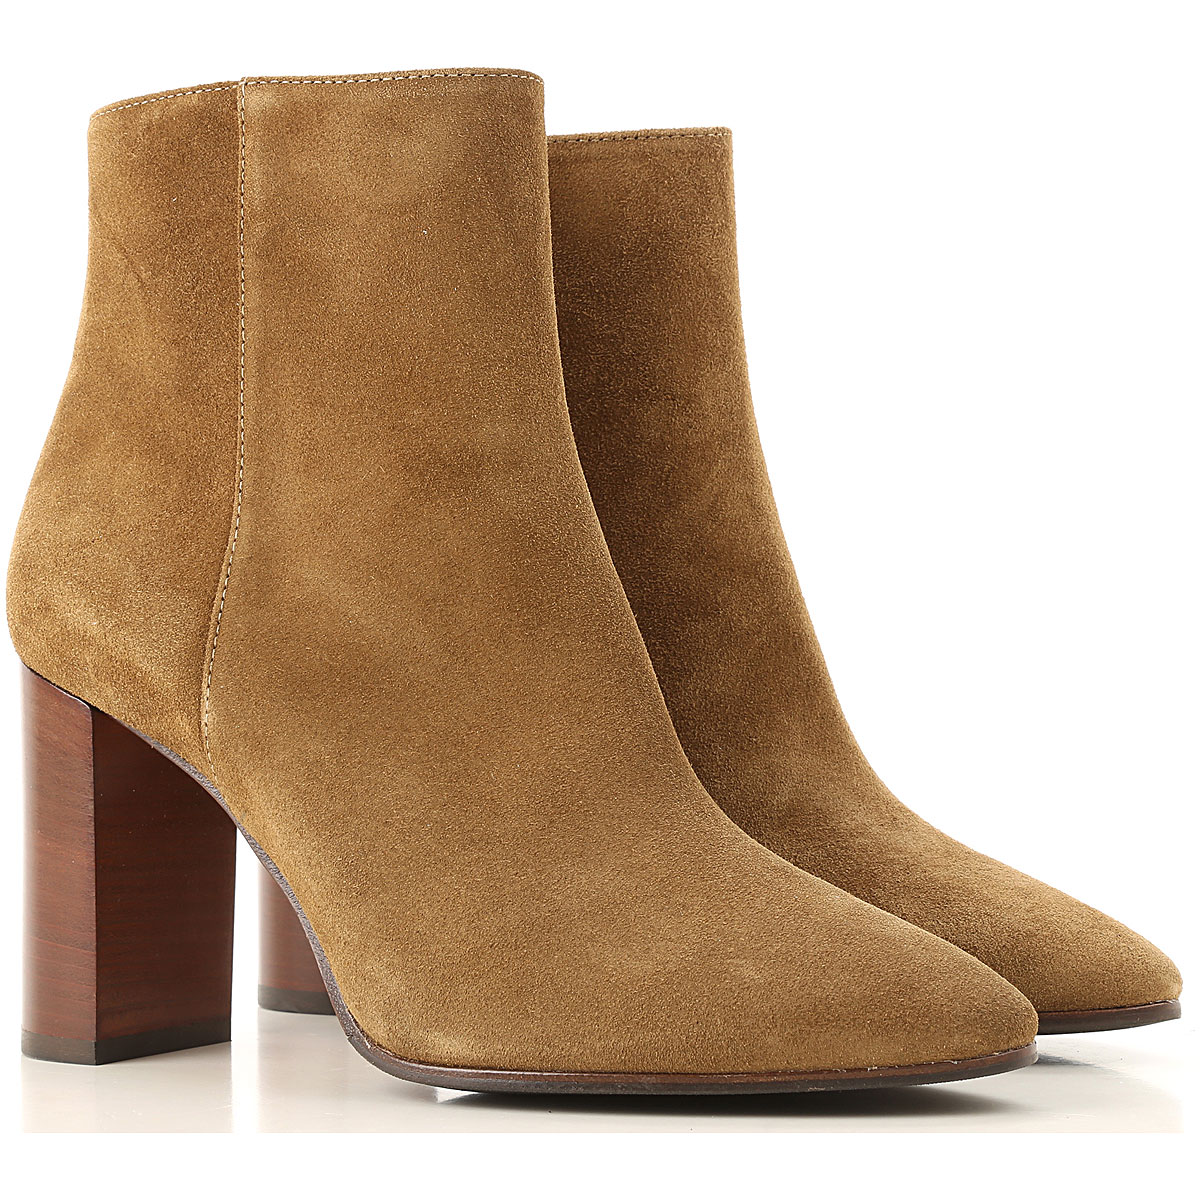 Roberto Festa Boots for Women, Booties On Sale, Moustard, Suede leather, 2019, 6 7 8 9